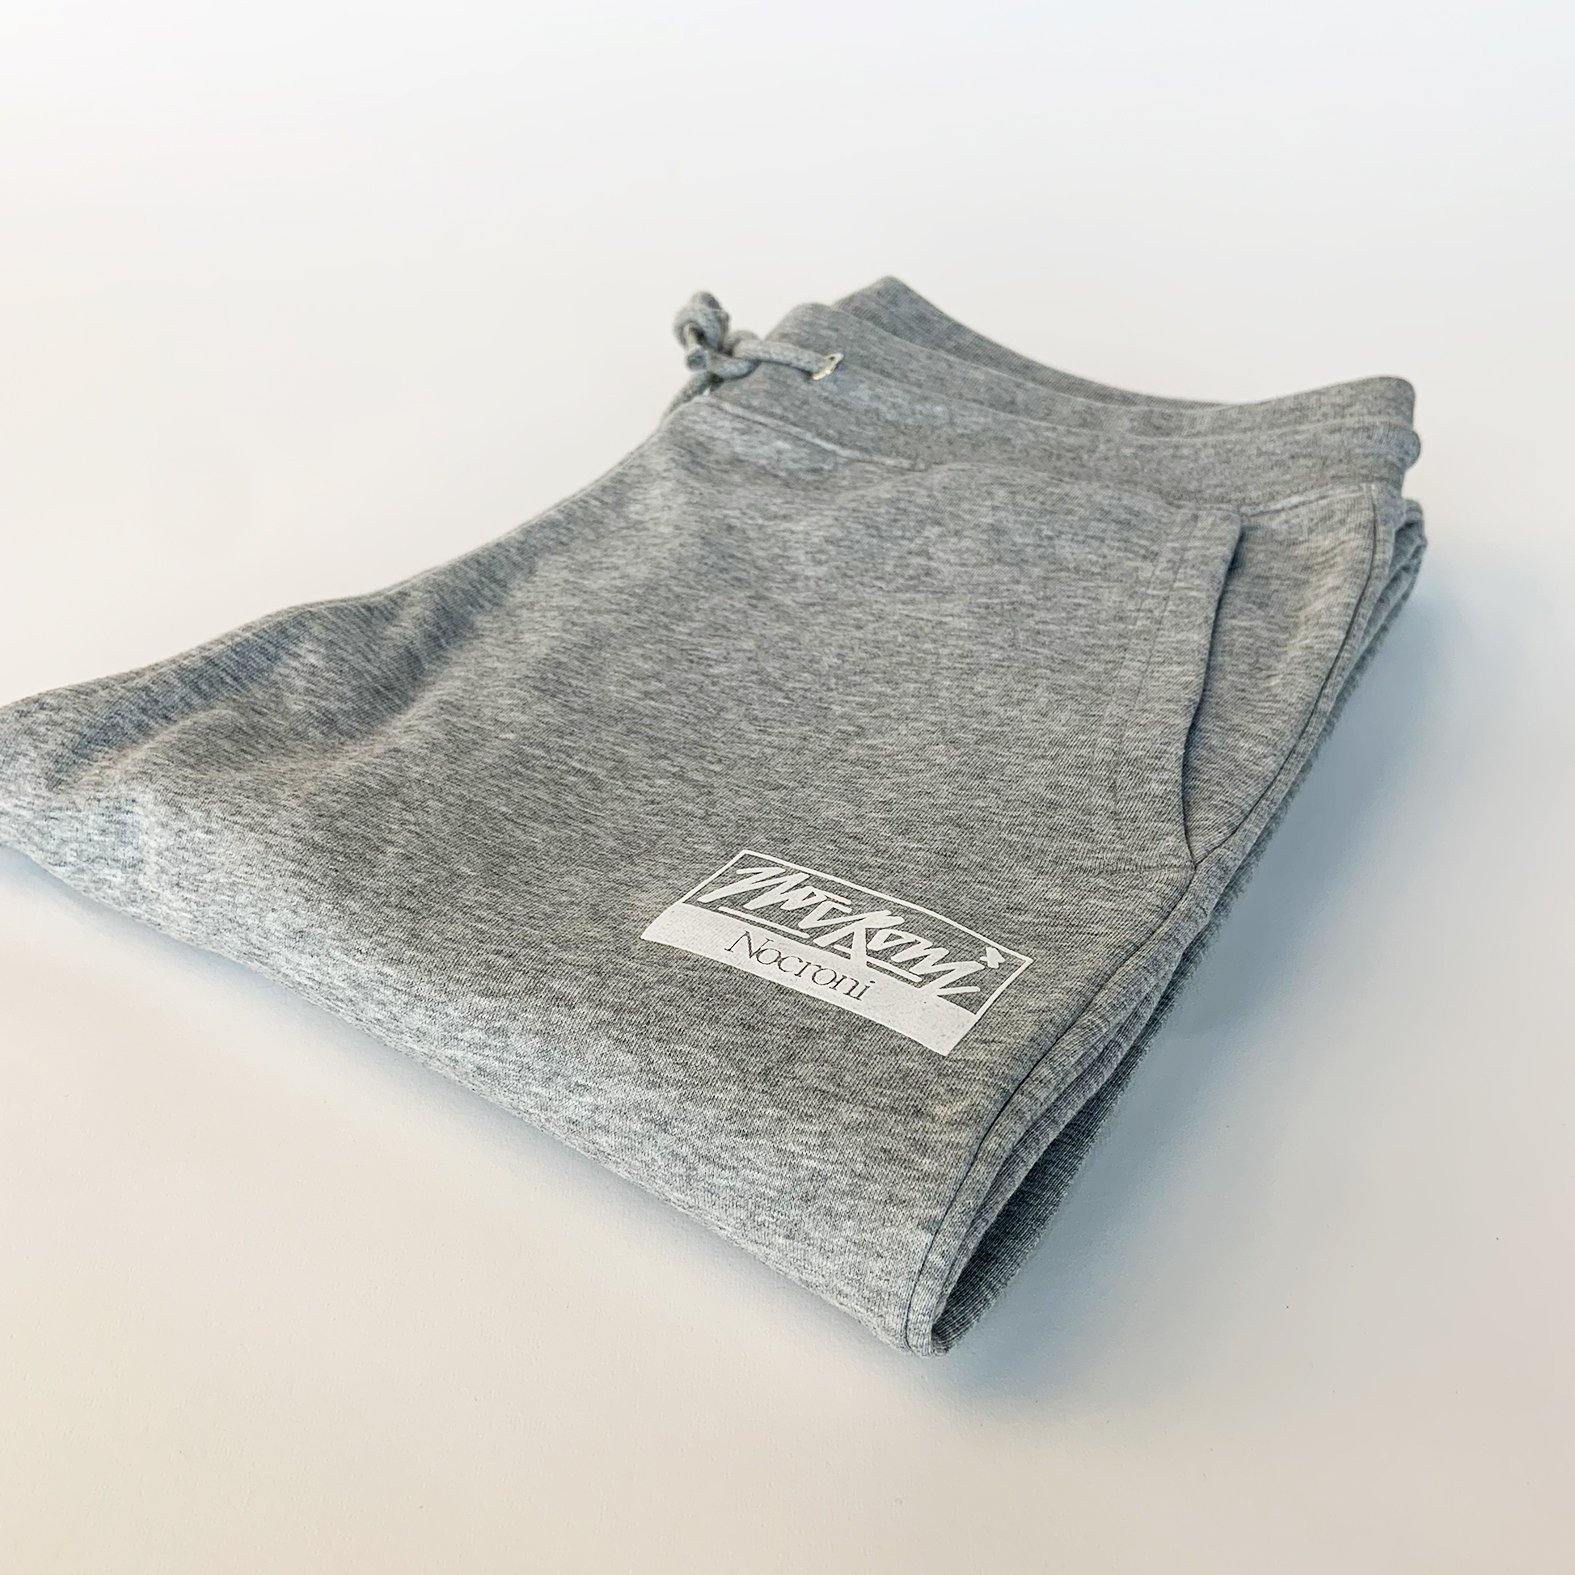 Nocroni Sweatpants Black or Grey